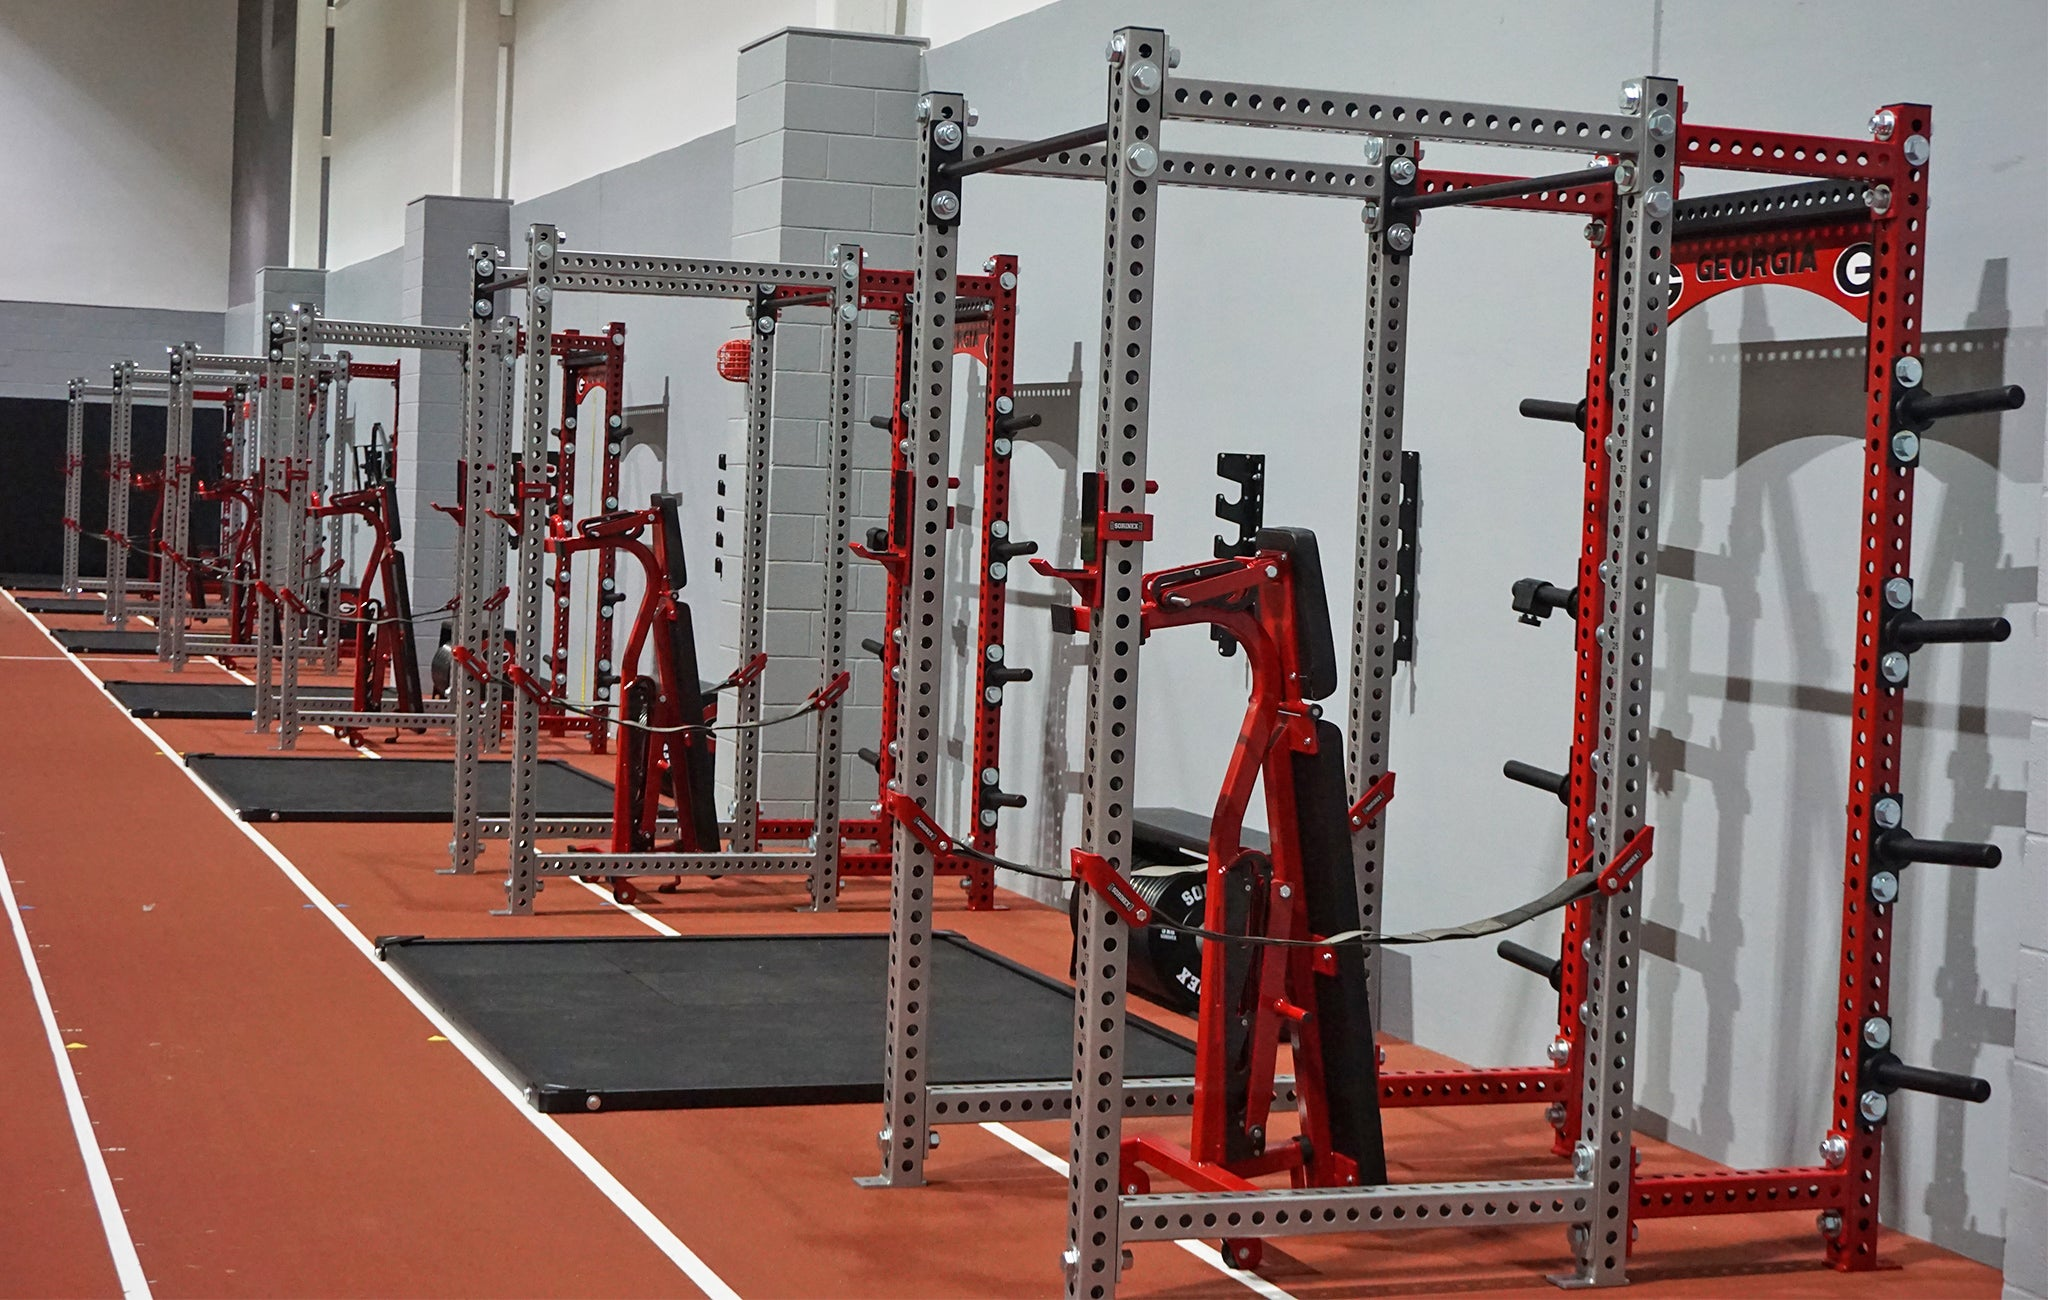 University of Georgia Weight Room